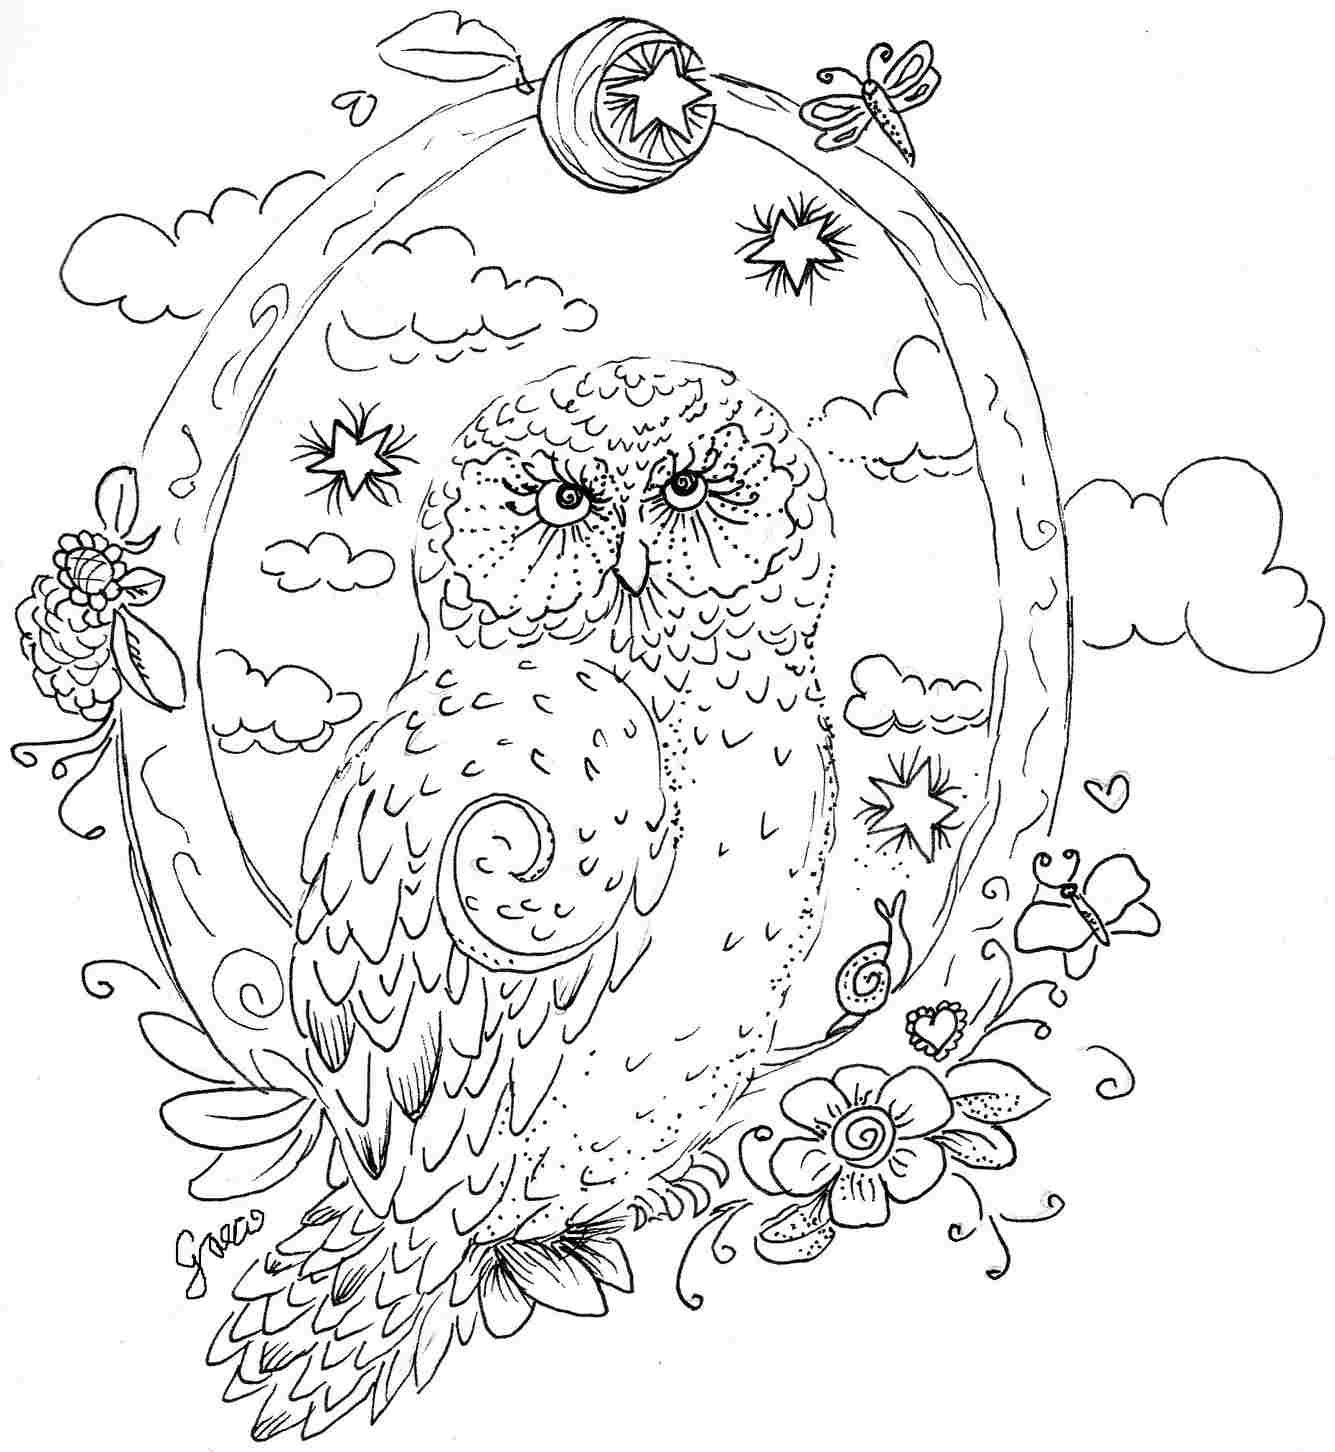 Pics For Coloring Pages Adults Difficult Owls